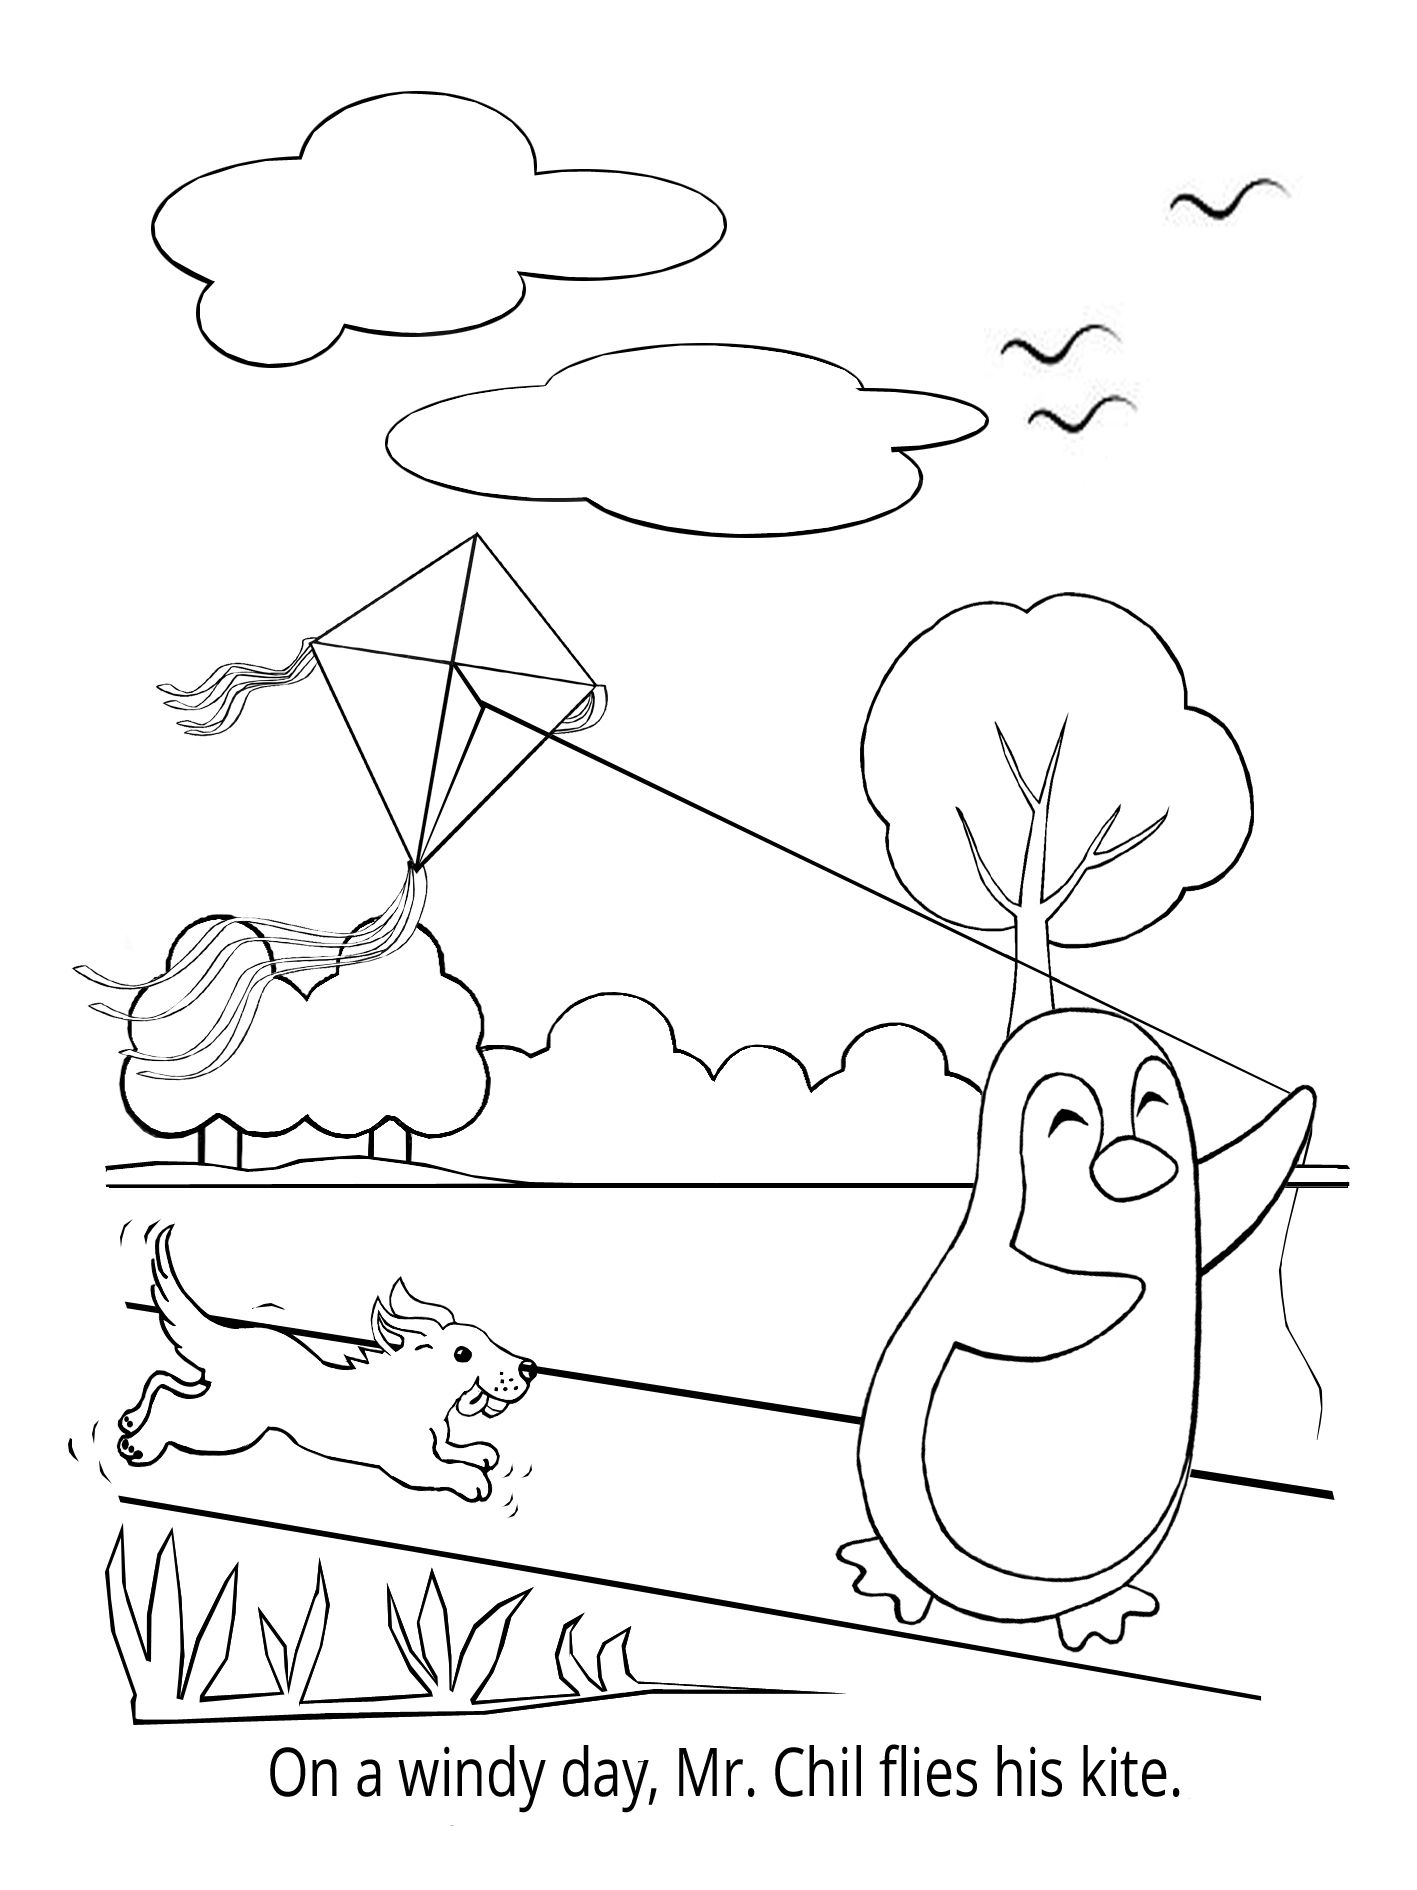 Penguin Coloring Book - Mr. Chil loves outdoor activities! | Summer ...